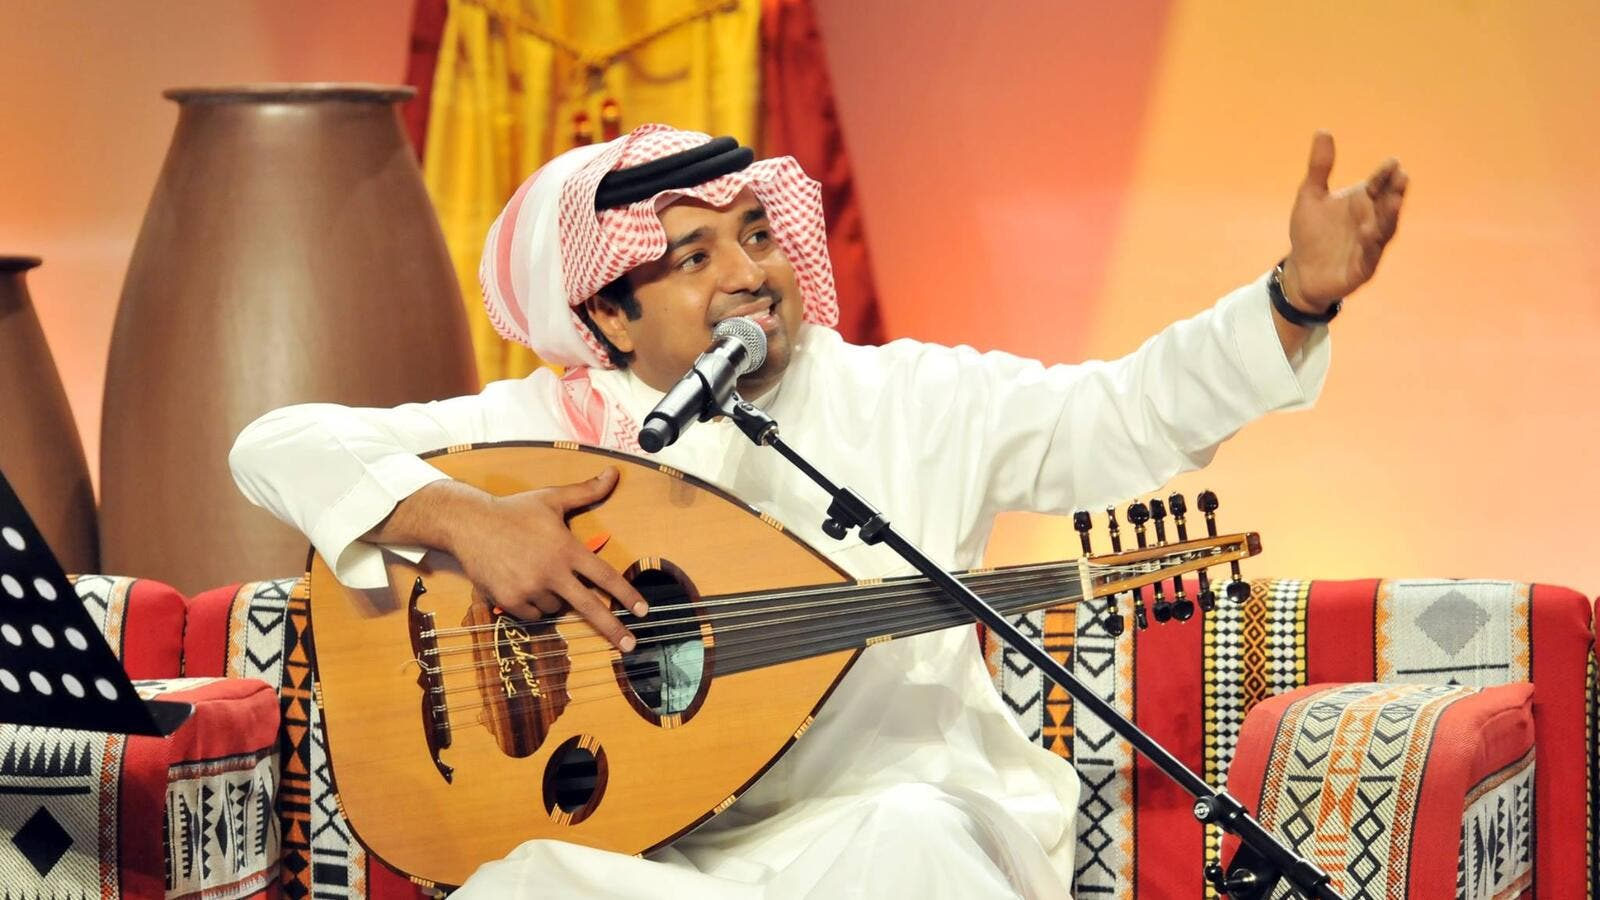 AL TÉLÉCHARGER MAJID RASHED MUSIC